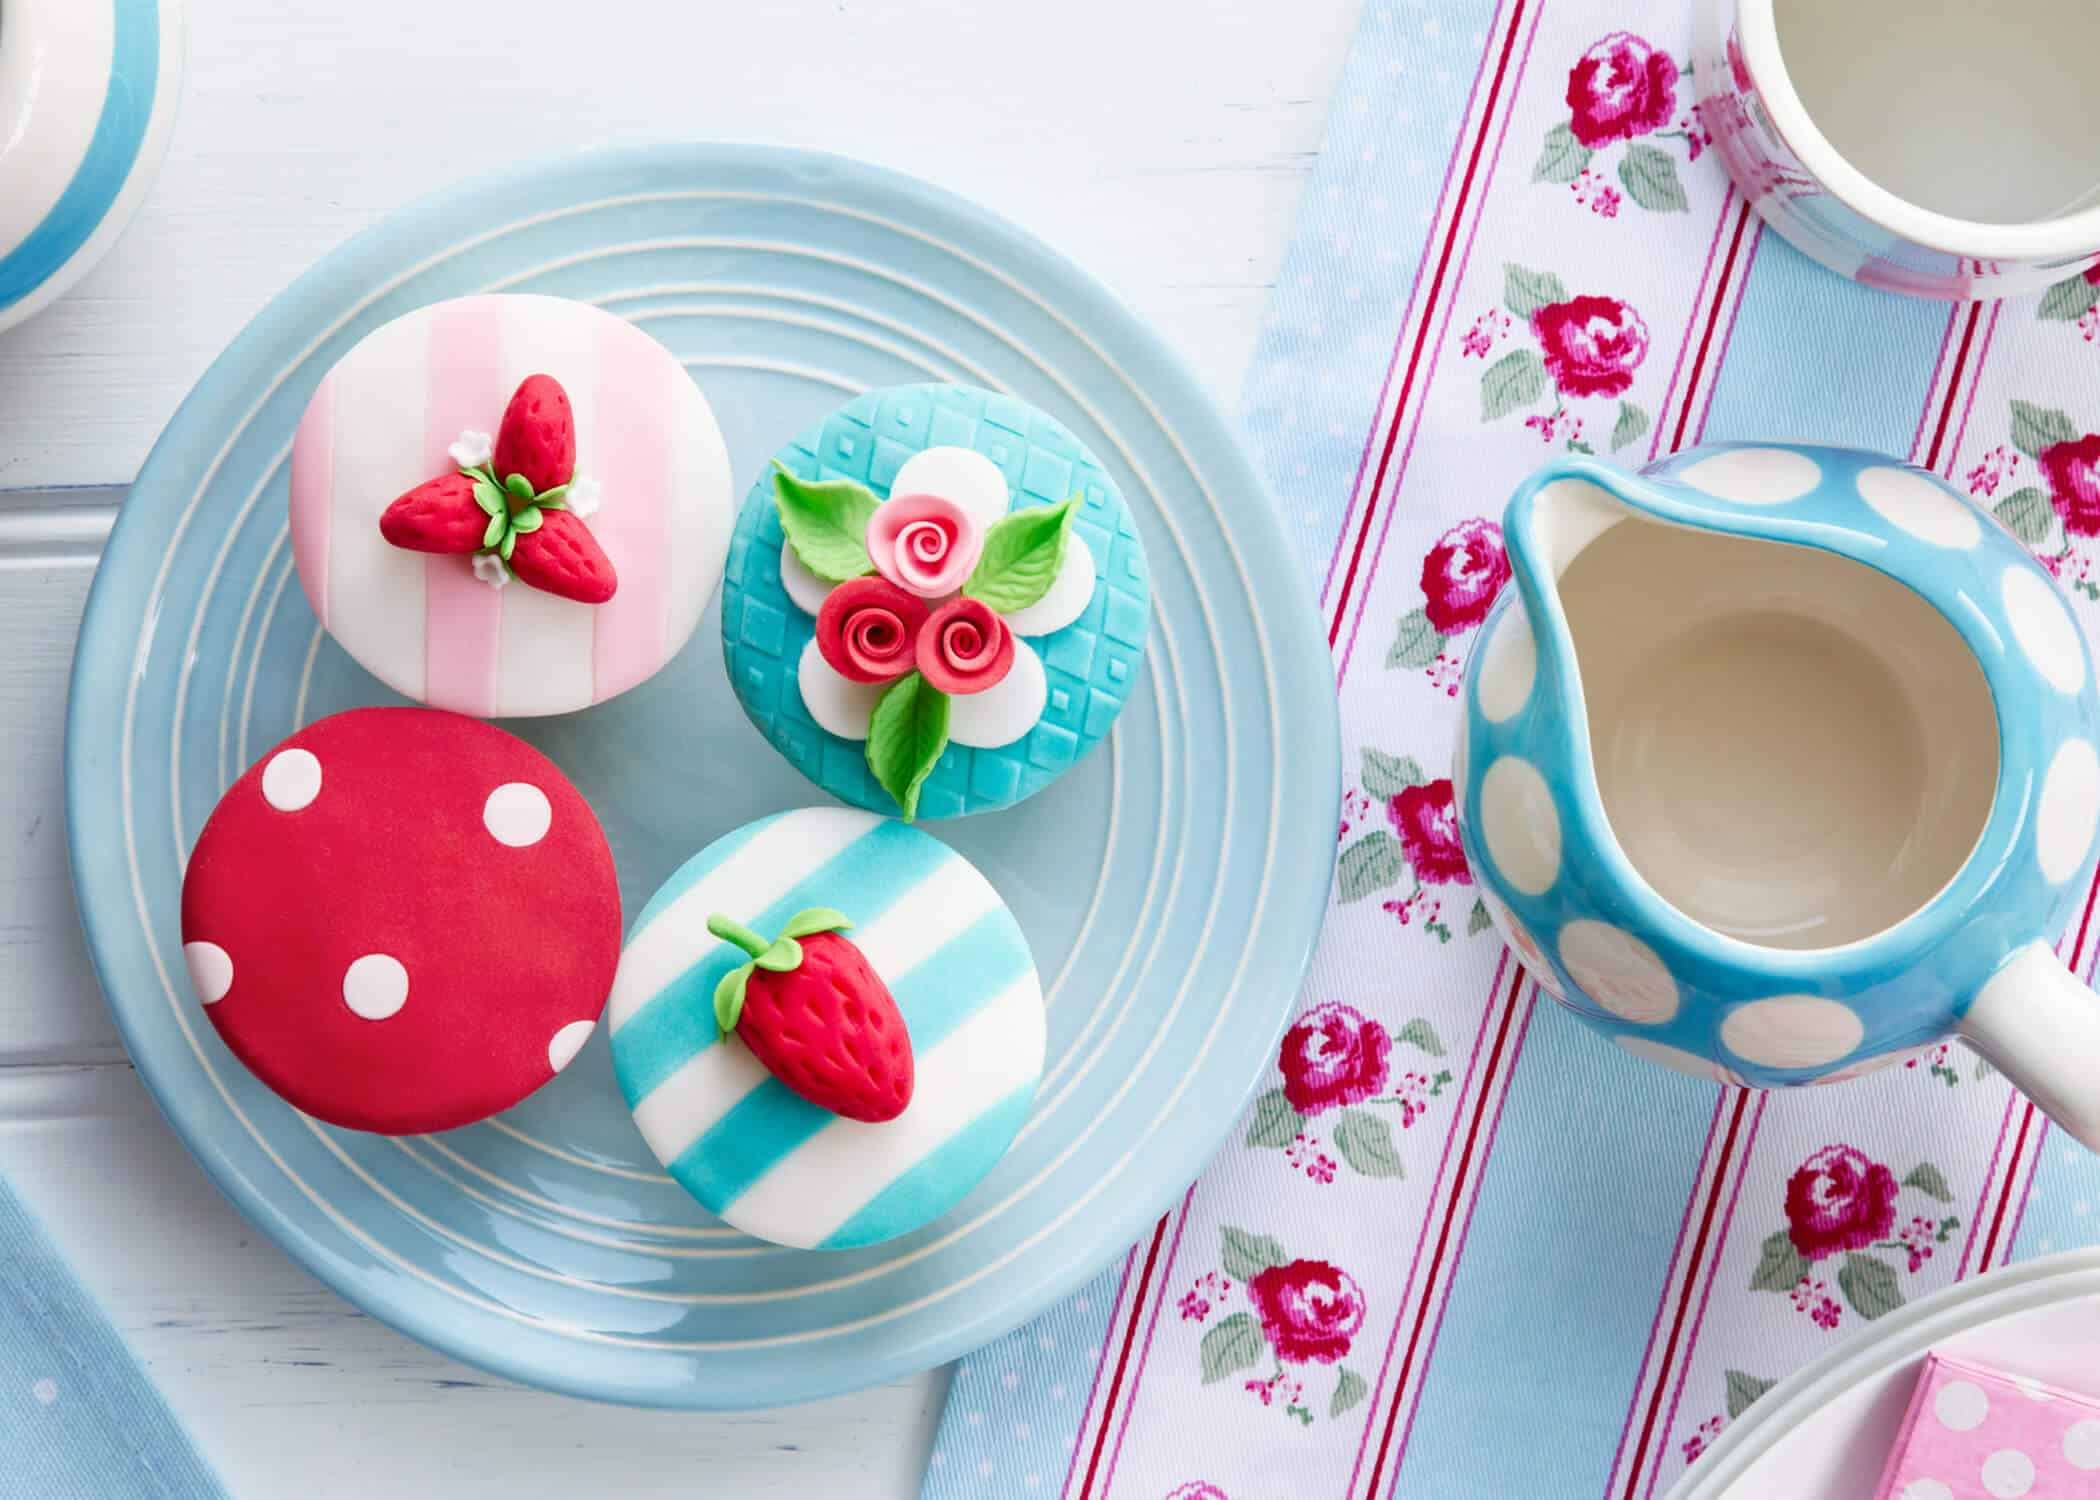 cupcakes and tea party ideas on a table